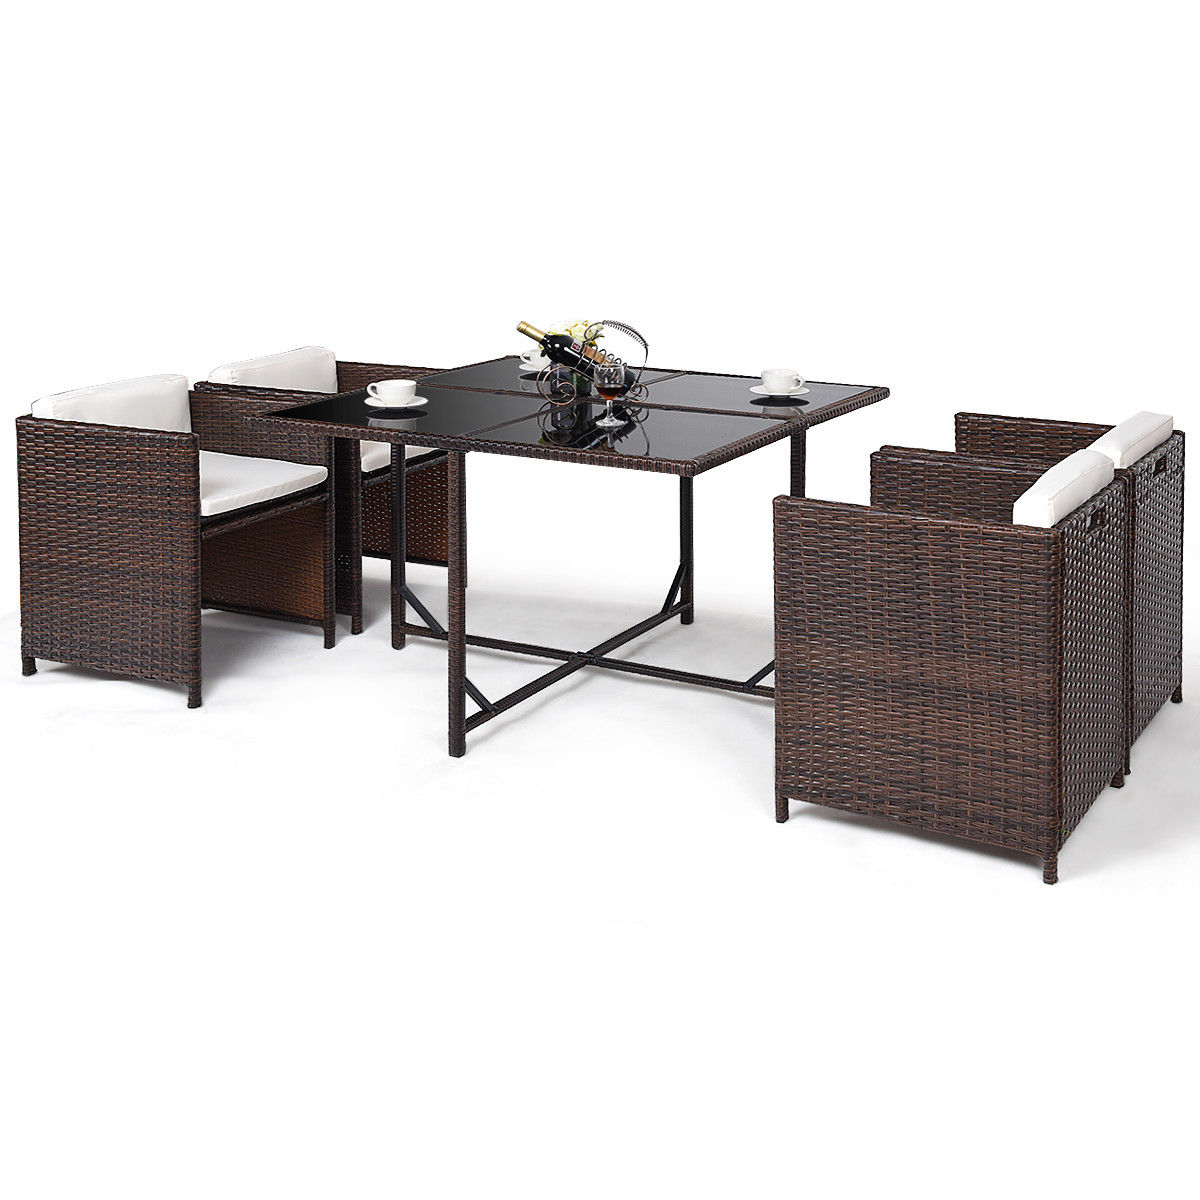 Costway 5 PCS Outdoor Patio Dining Set Rattan Wicker Sofa Table Furniture Garden Yard